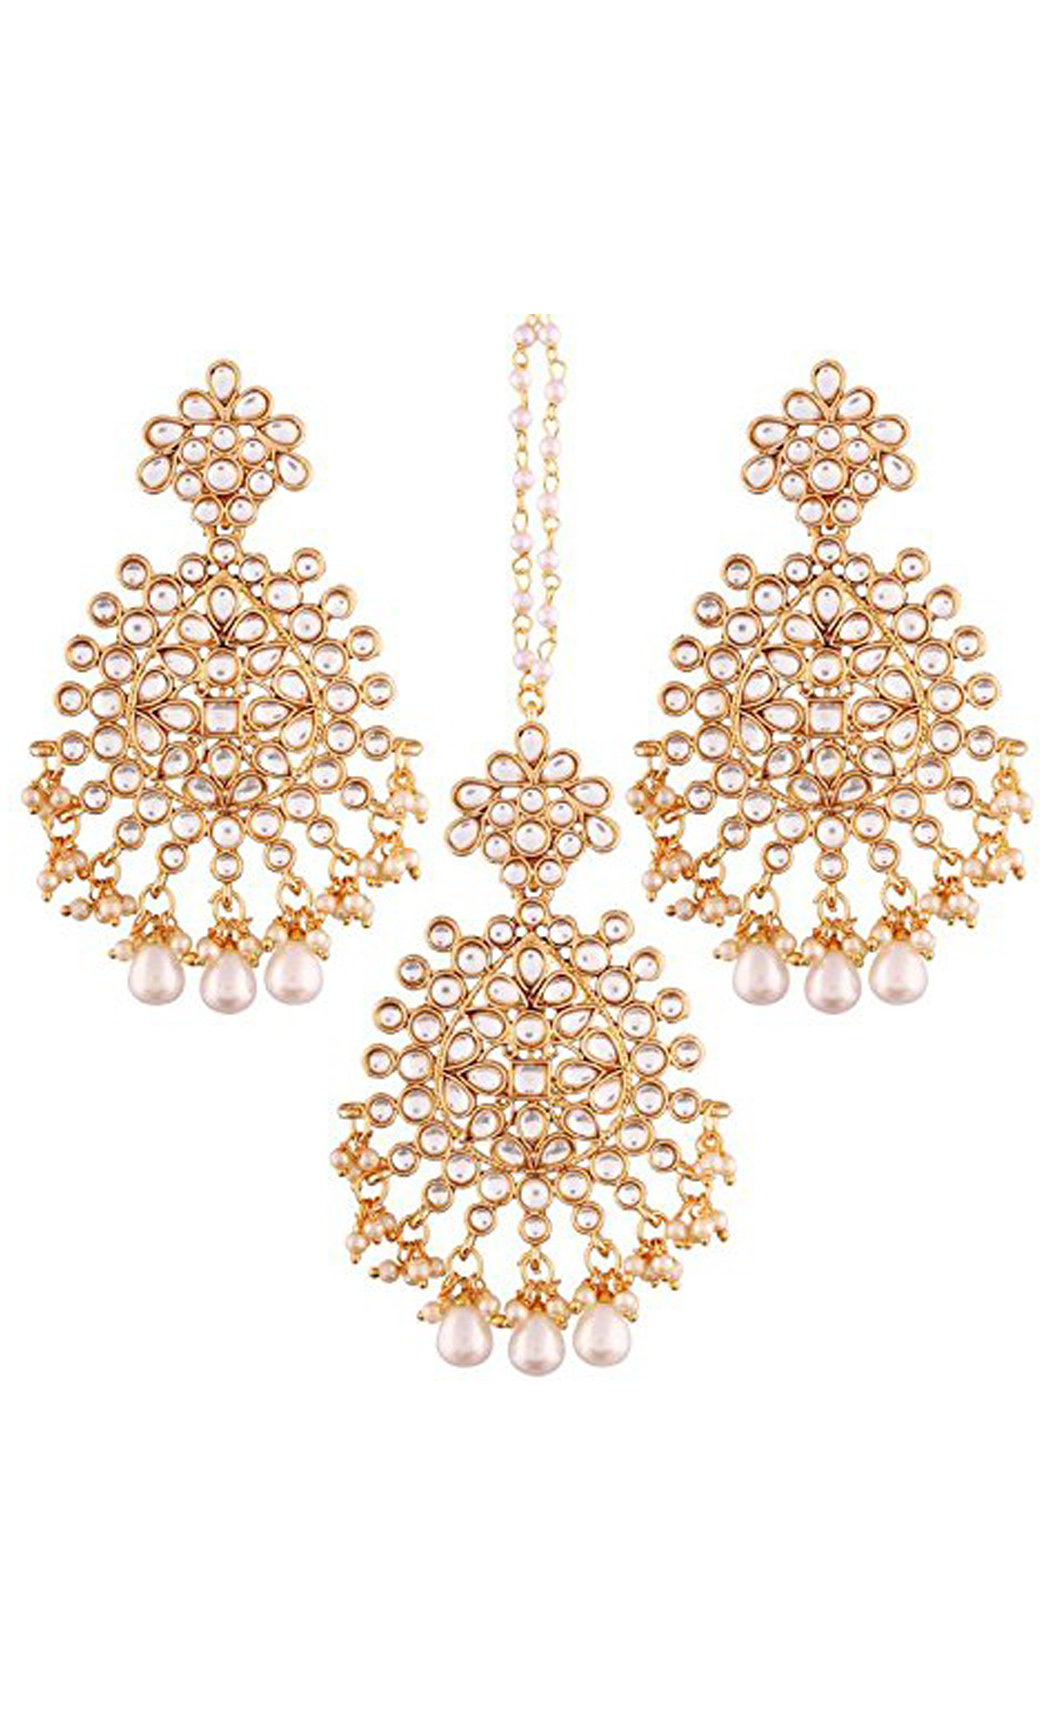 Pearl and Kundan Earrings and Maang Tikka Set | Indian Bridal Jewellery Sets With Price